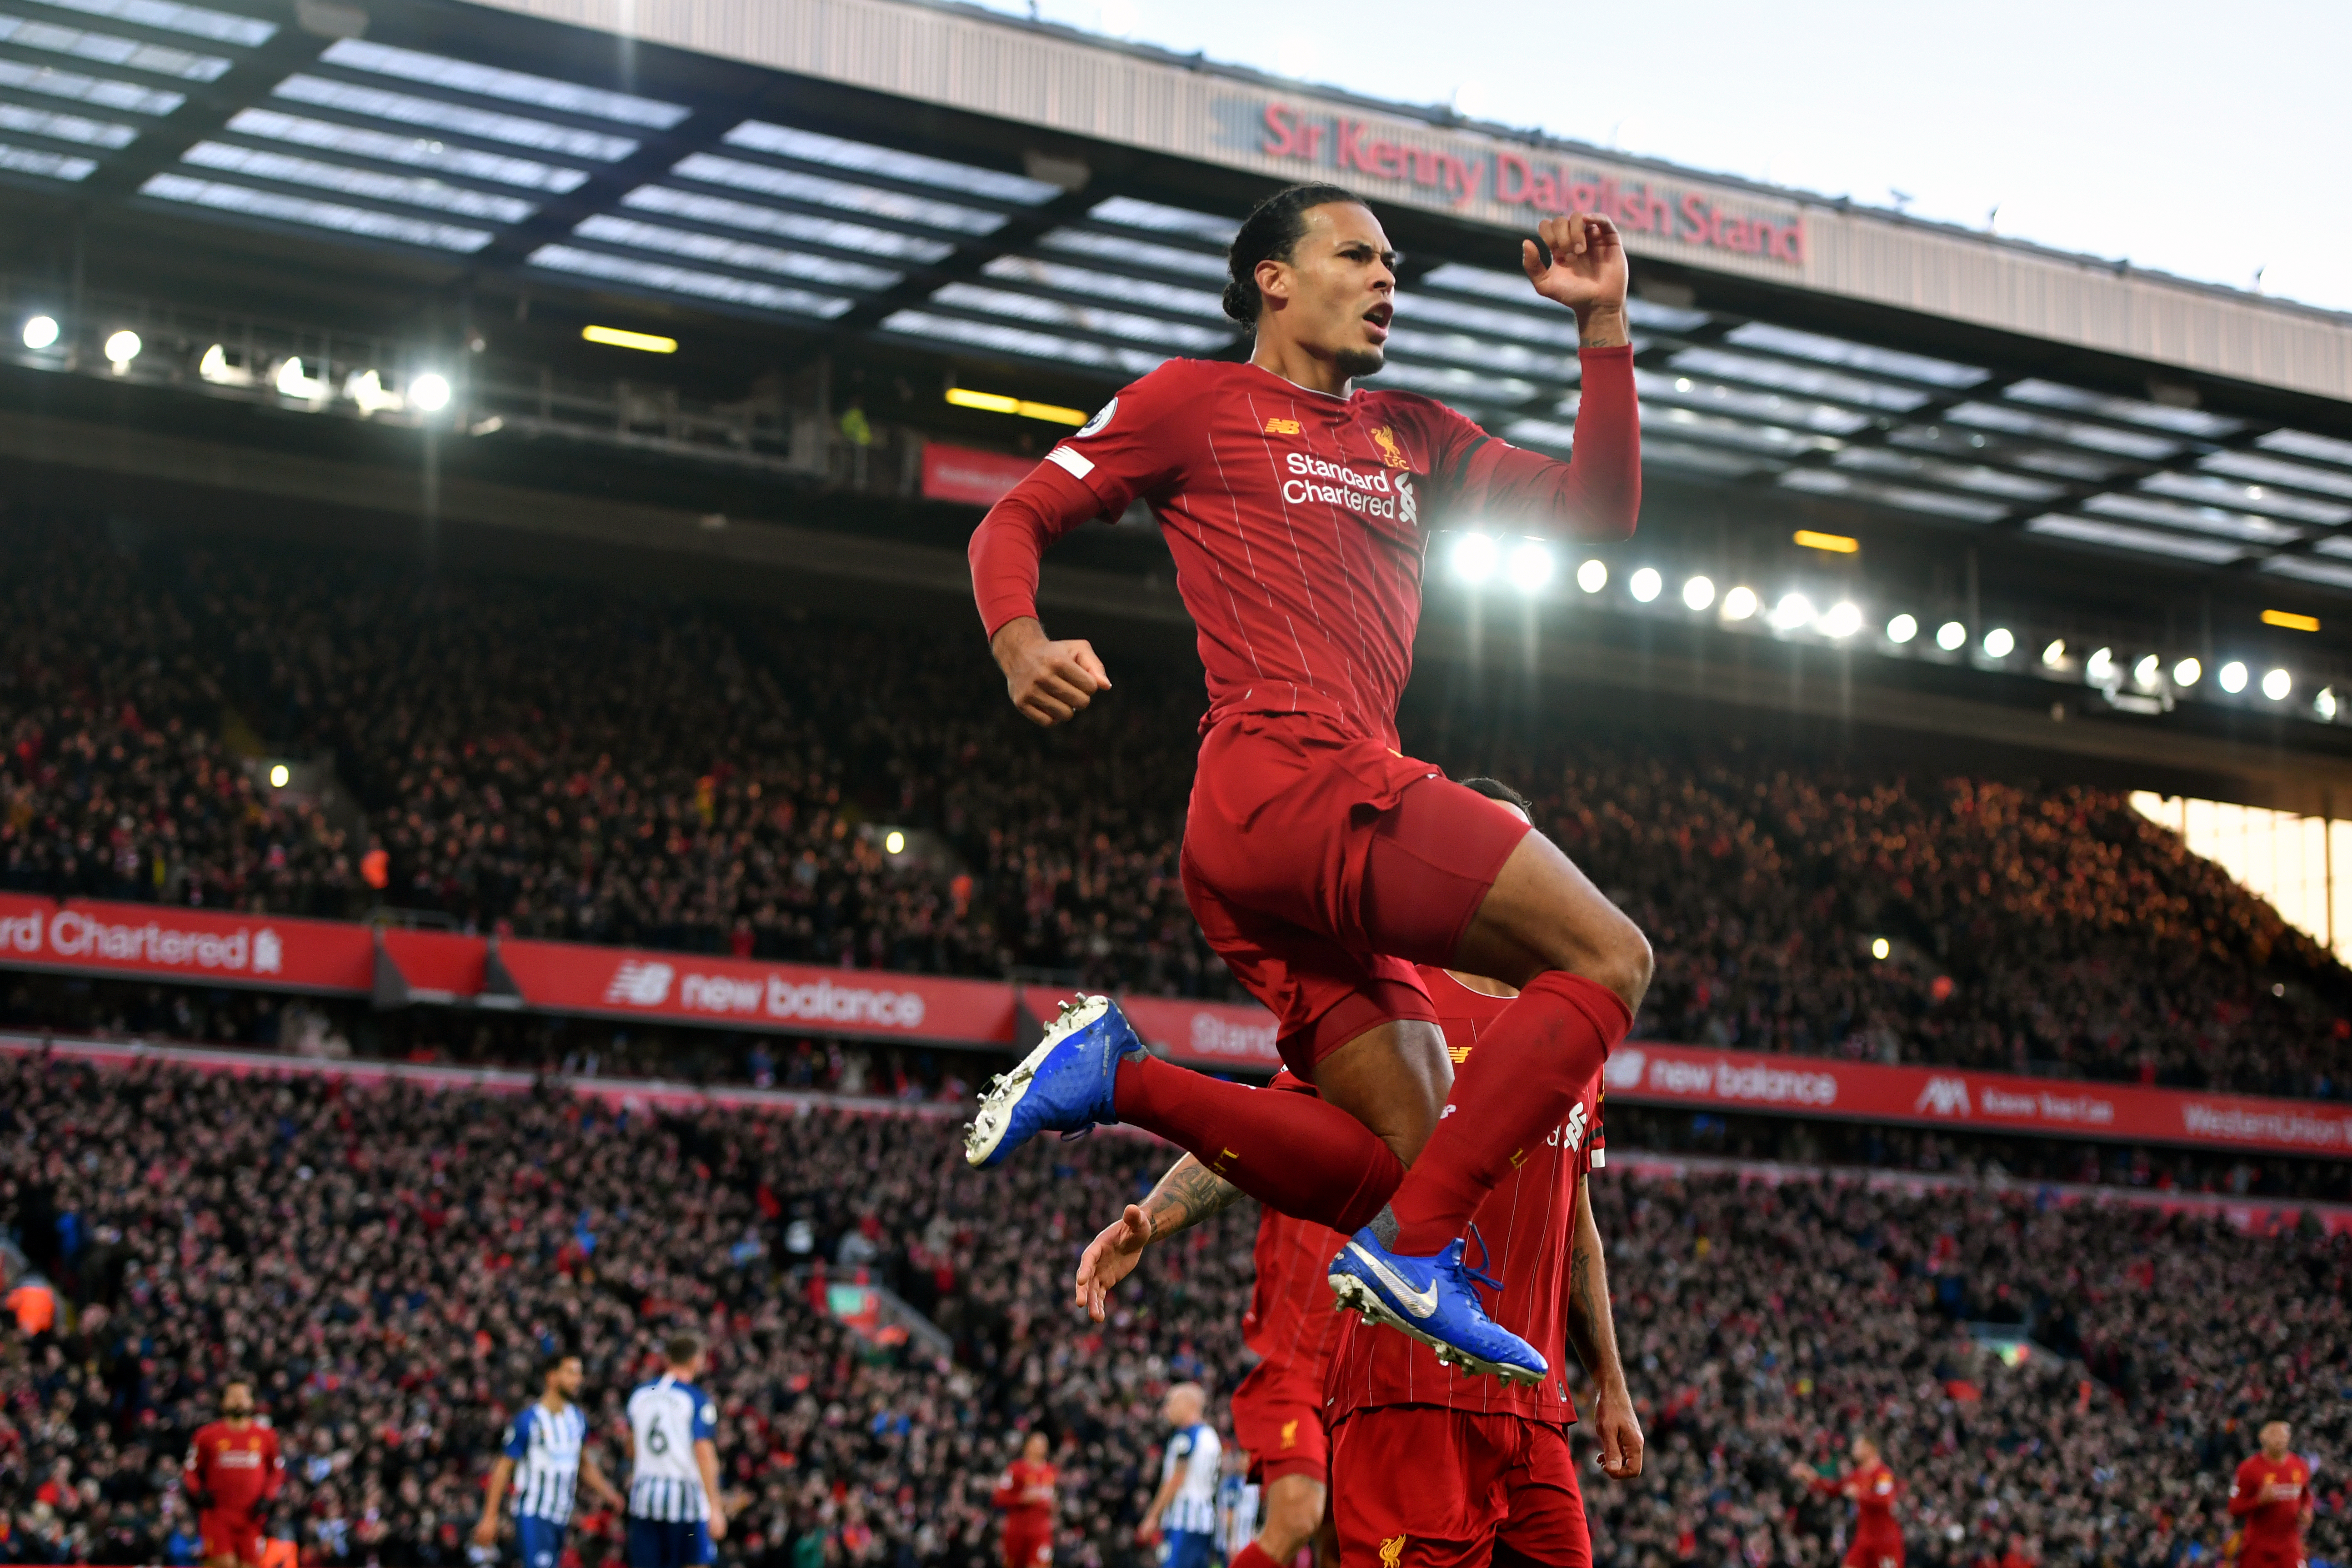 Virgil van Dijk was the unlikely goalscoring hero when Liverpool scraped past Brighton at Anfield. The Holland defender headed two first-half goals before the hosts were forced to hang on for a 2-1 victory following the dismissal of goalkeeper Alisson Becker